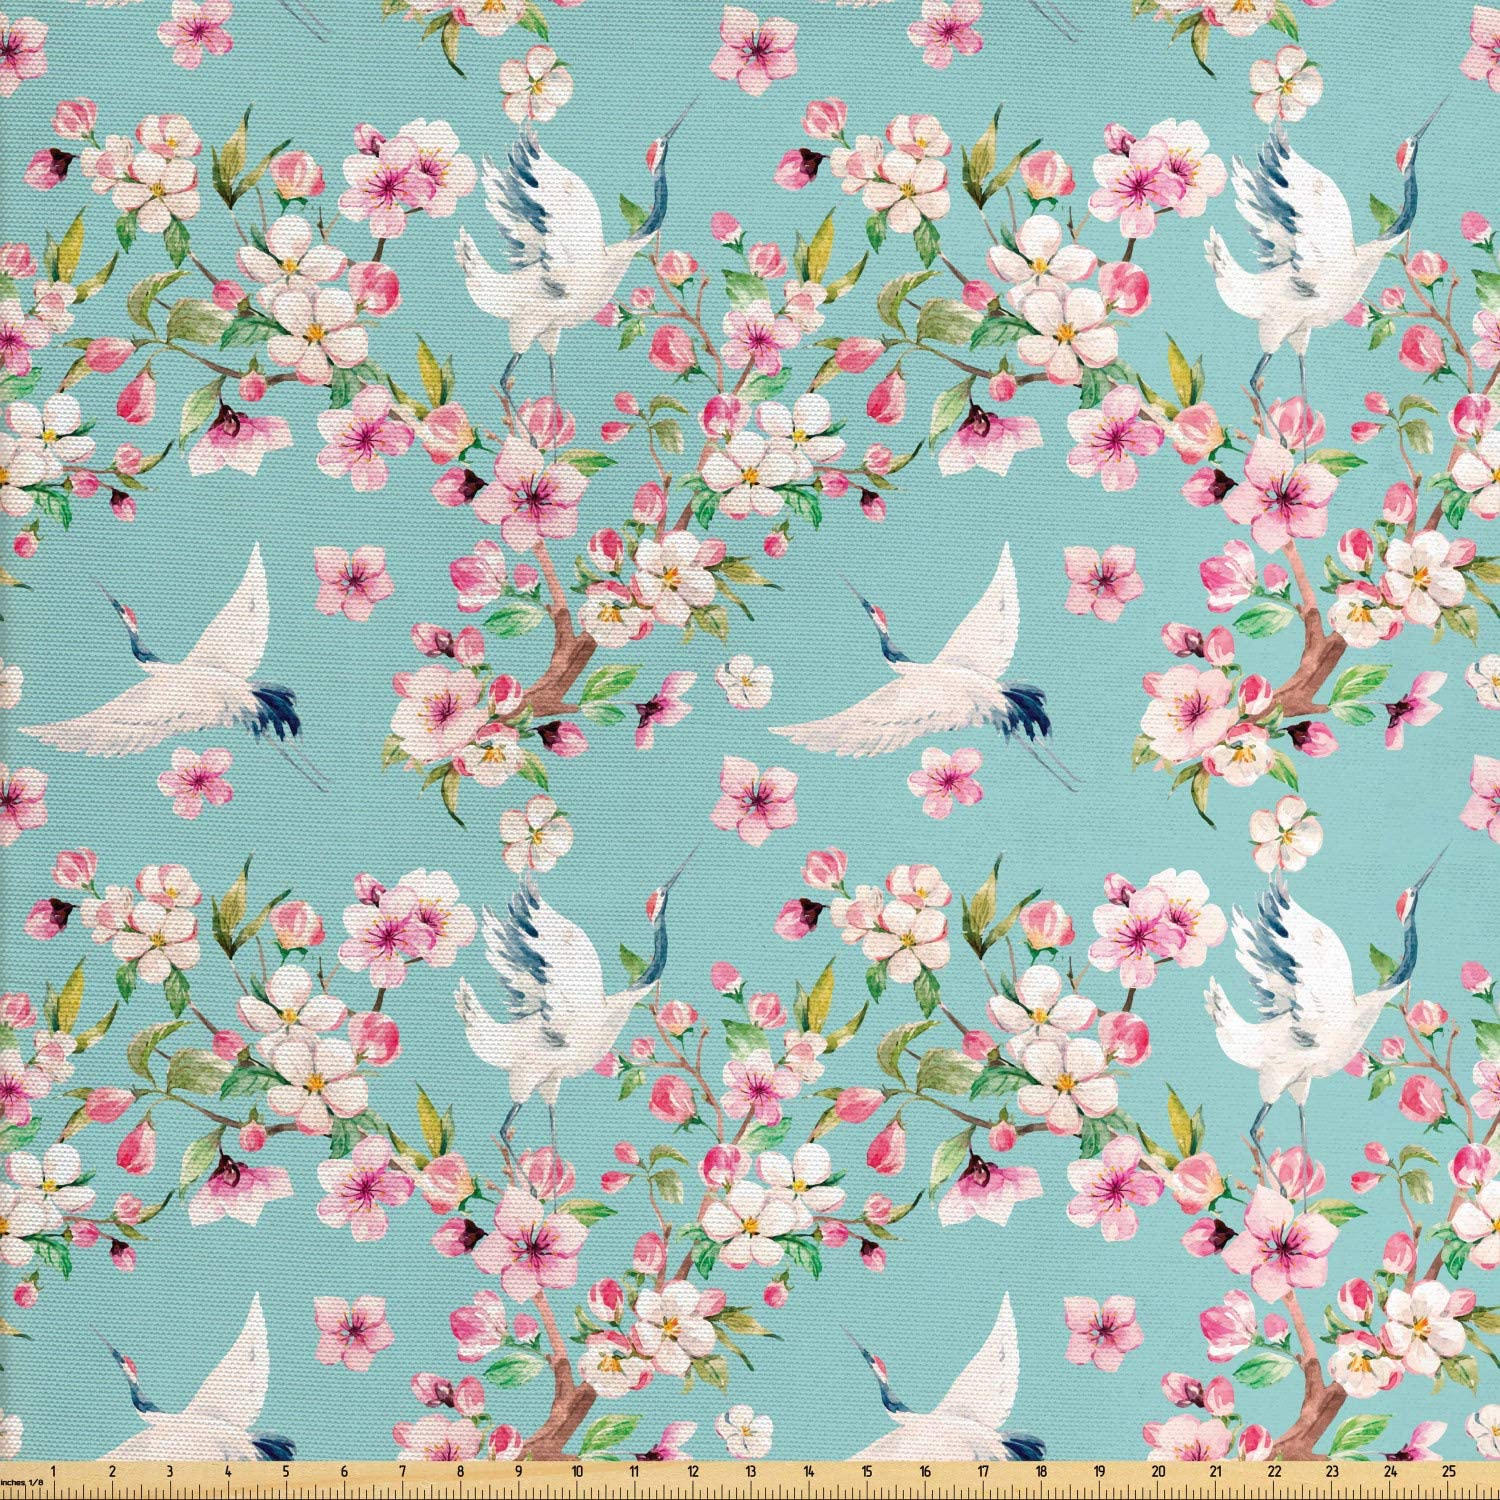 Ambesonne Flowers Fabric by The Yard, Watercolor Art Style Flying Crane Birds with Pink Sakura Cherry Blossoms Exotic, Decorative Fabric for Upholstery and Home Accents, 3 Yards, Seafoam Pink